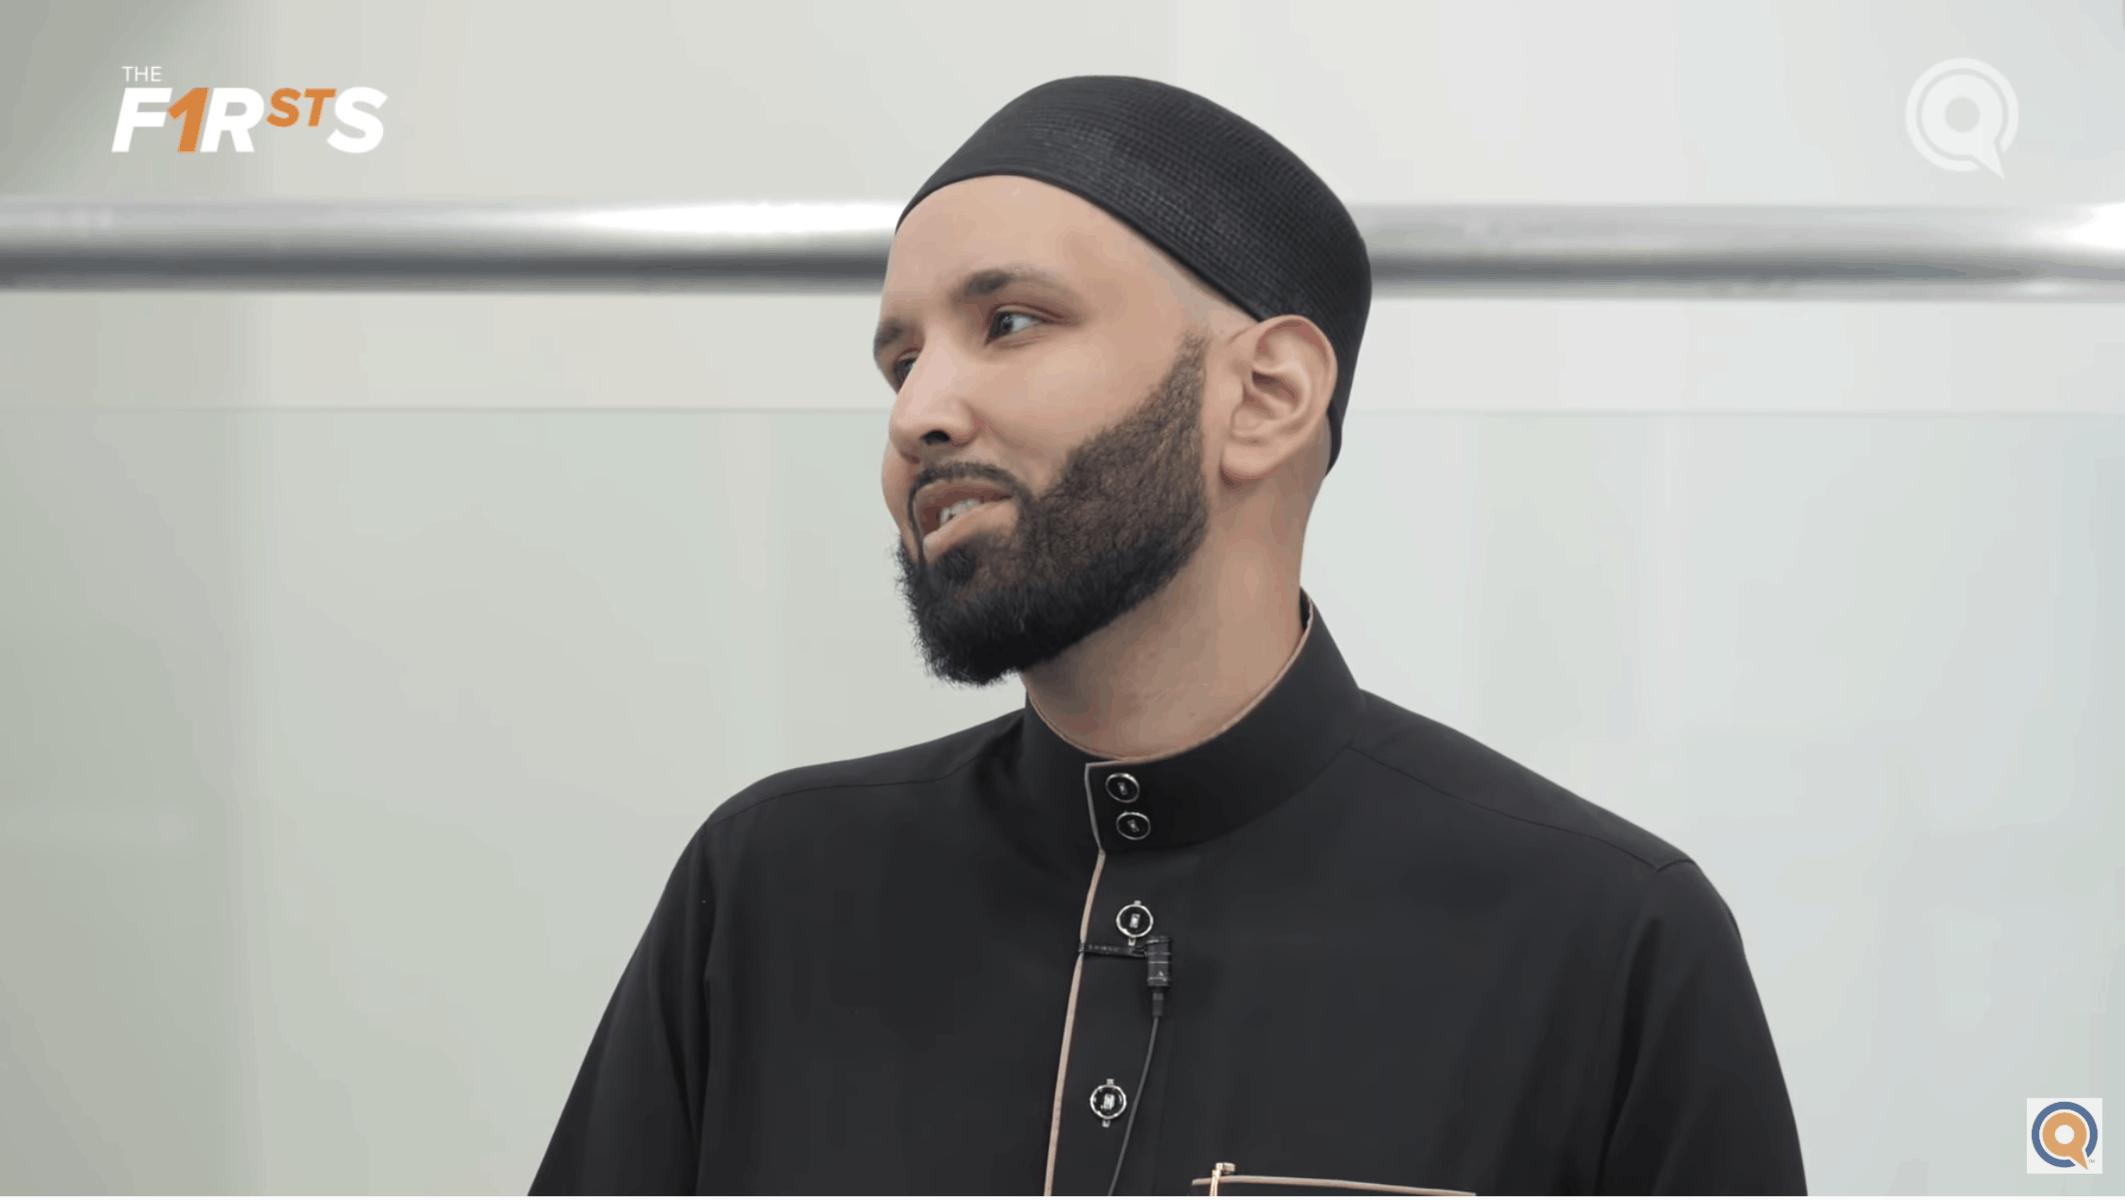 Omar Suleiman – The Firsts (Episode 11): Abu Bakr (Part 3): There Will Never Be Another One